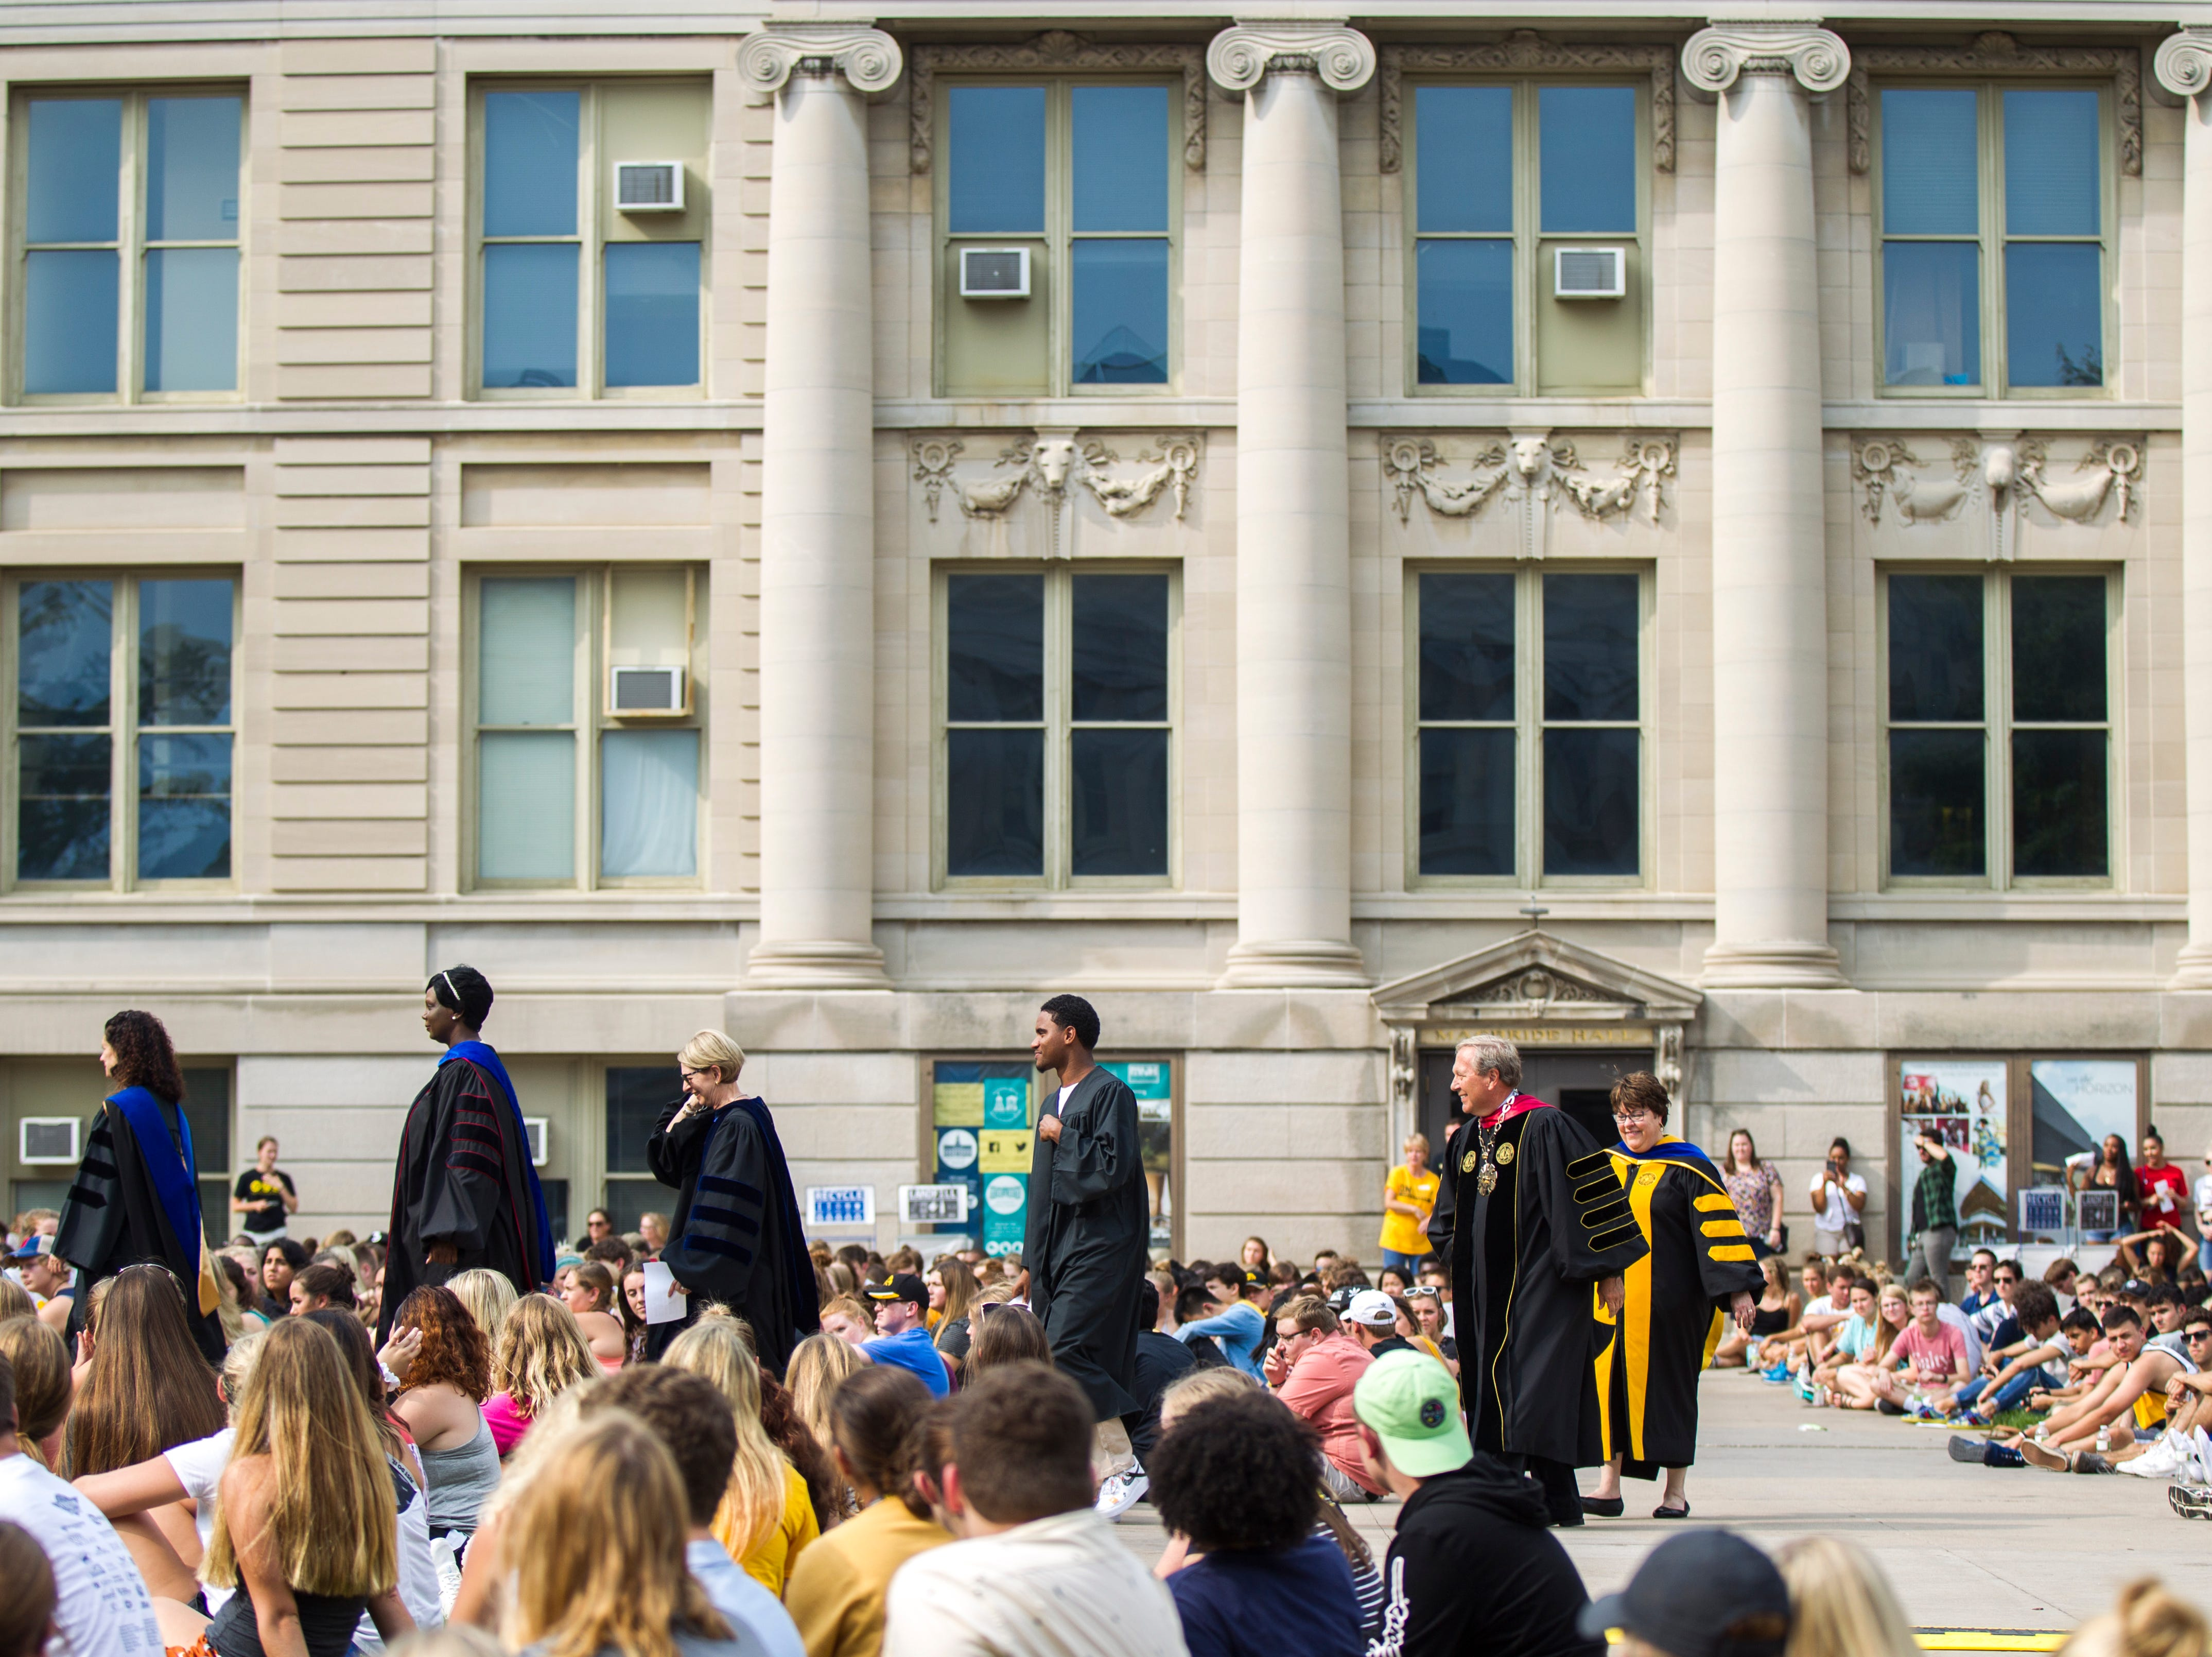 Melissa Shivers, (second from left) Sue Curry, Darius Christiansen, and Bruce Harreld walk towards a stage during the University of Iowa class of 2022 convocation on Sunday, Aug. 19, 2018, at the Pentacrest in Iowa City.